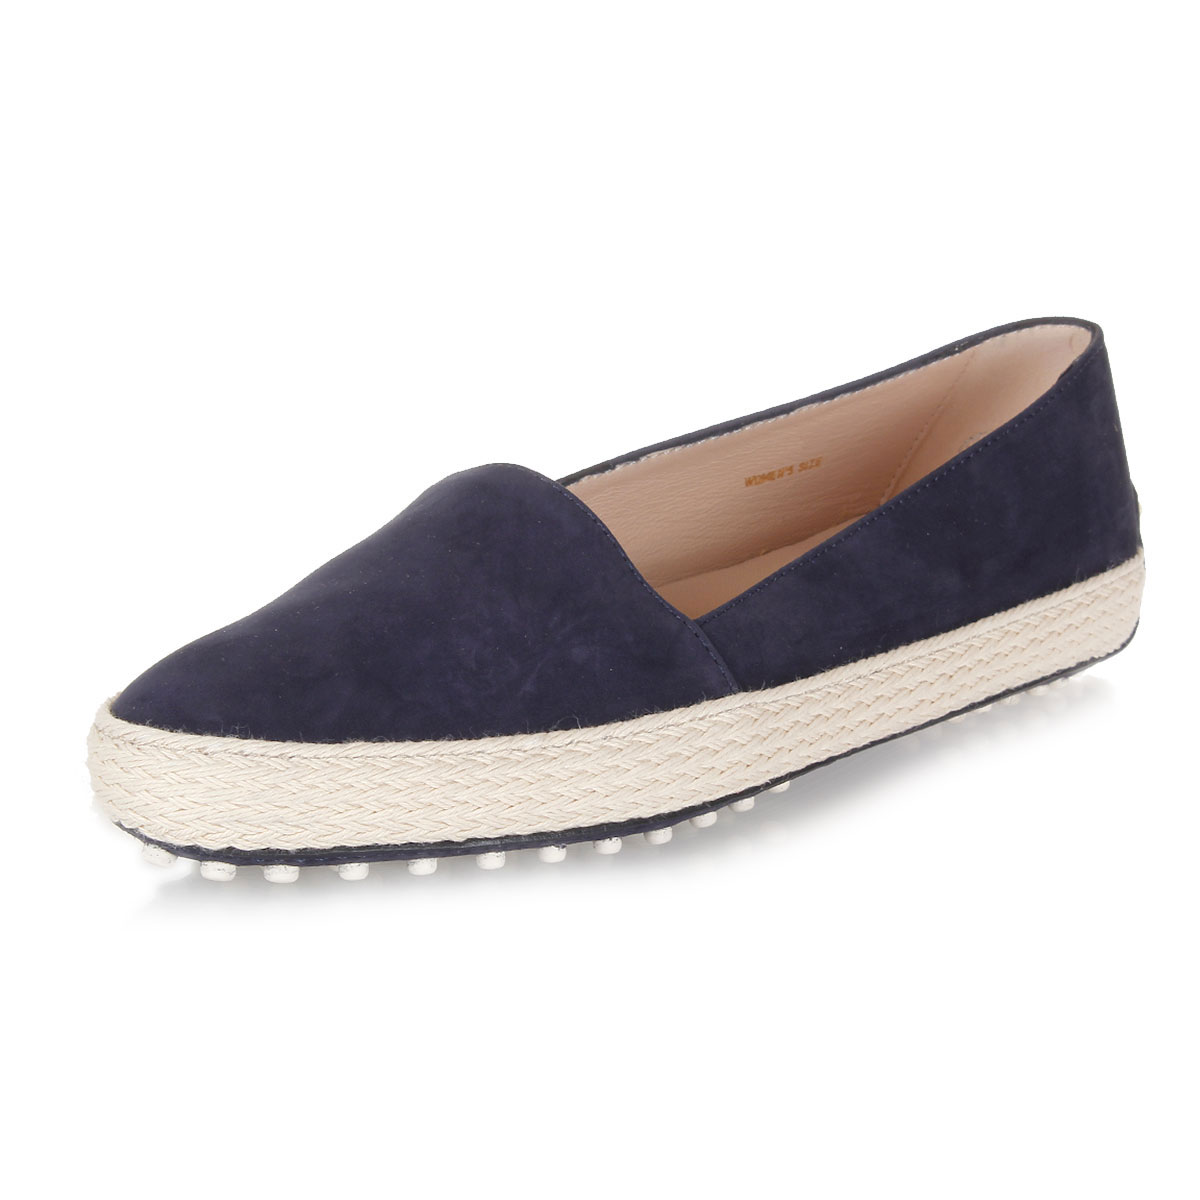 tods suede leather slip on shoes spence outlet